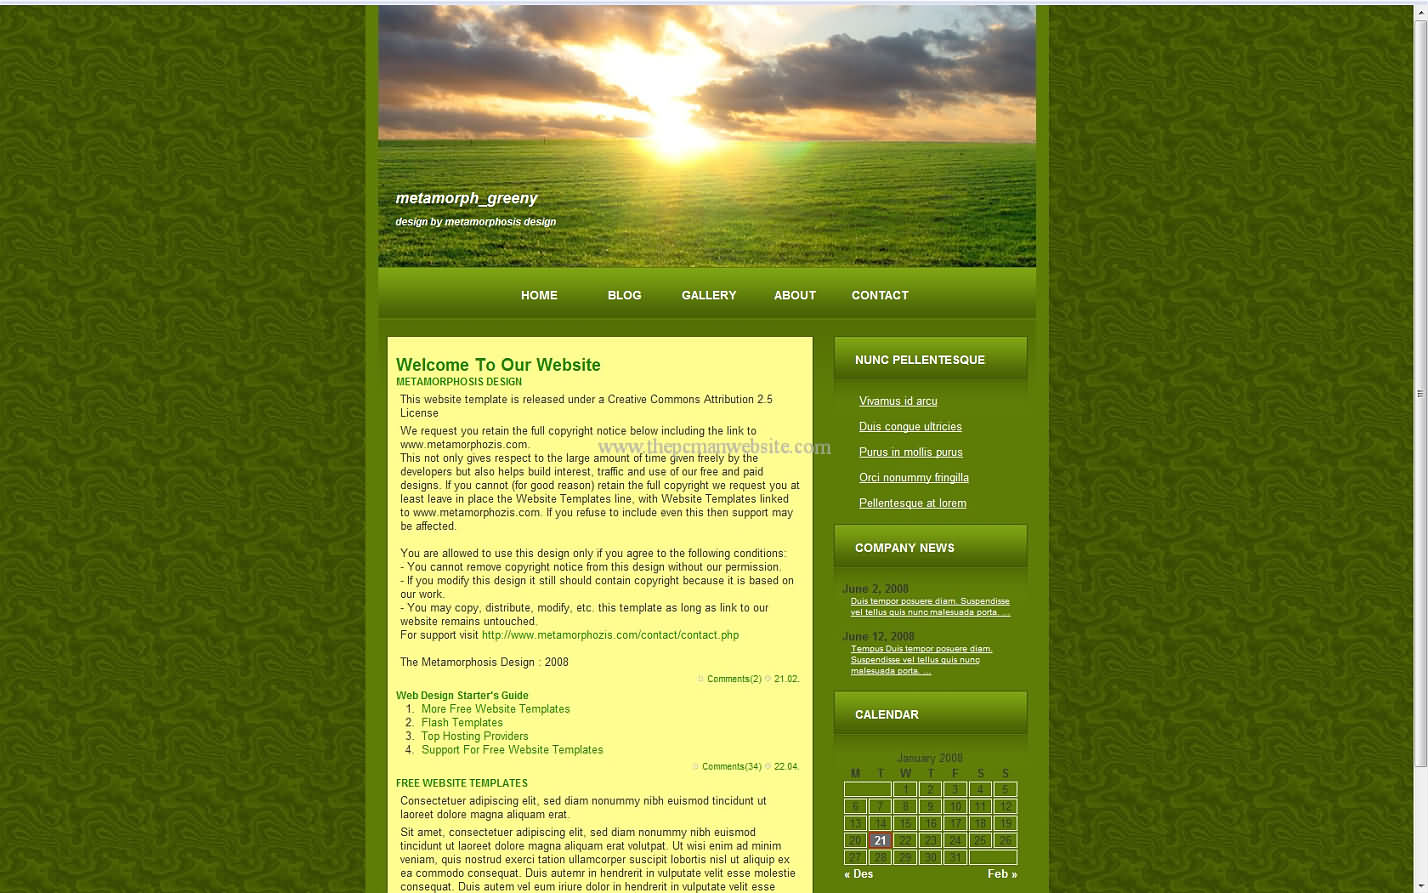 Metamorph Greeny css template